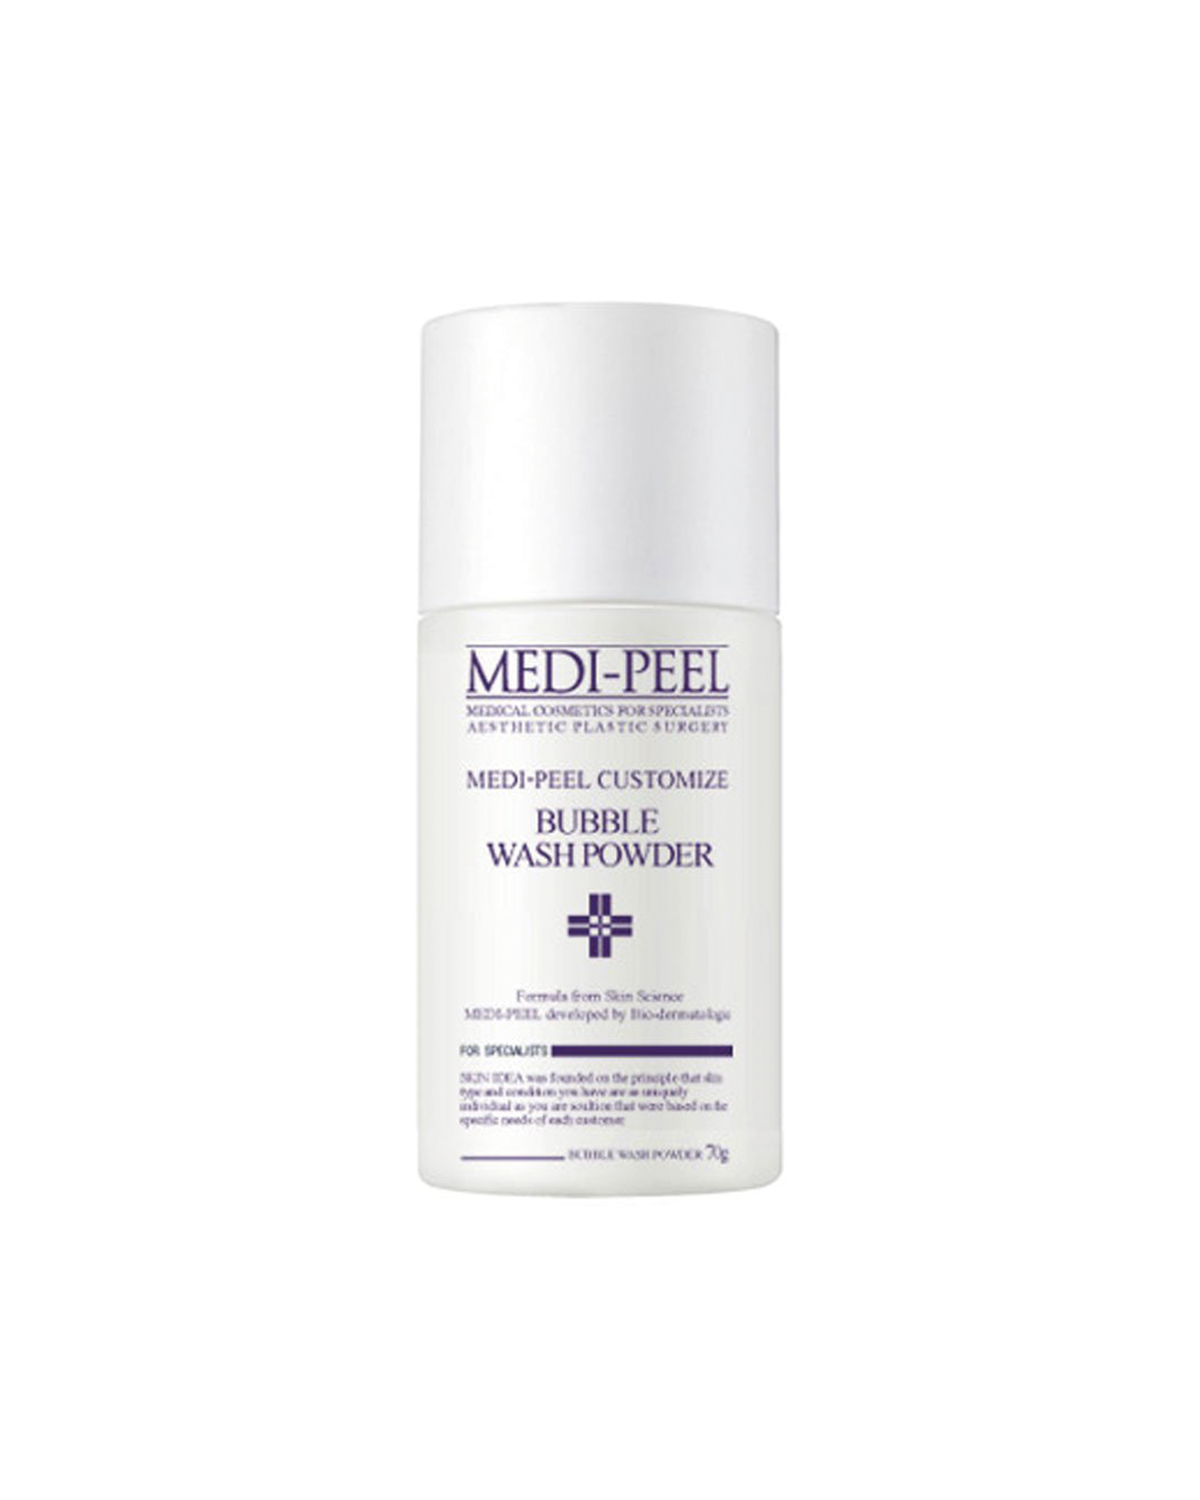 MEDI-PEEL  Bubble Wash Powder 70 g